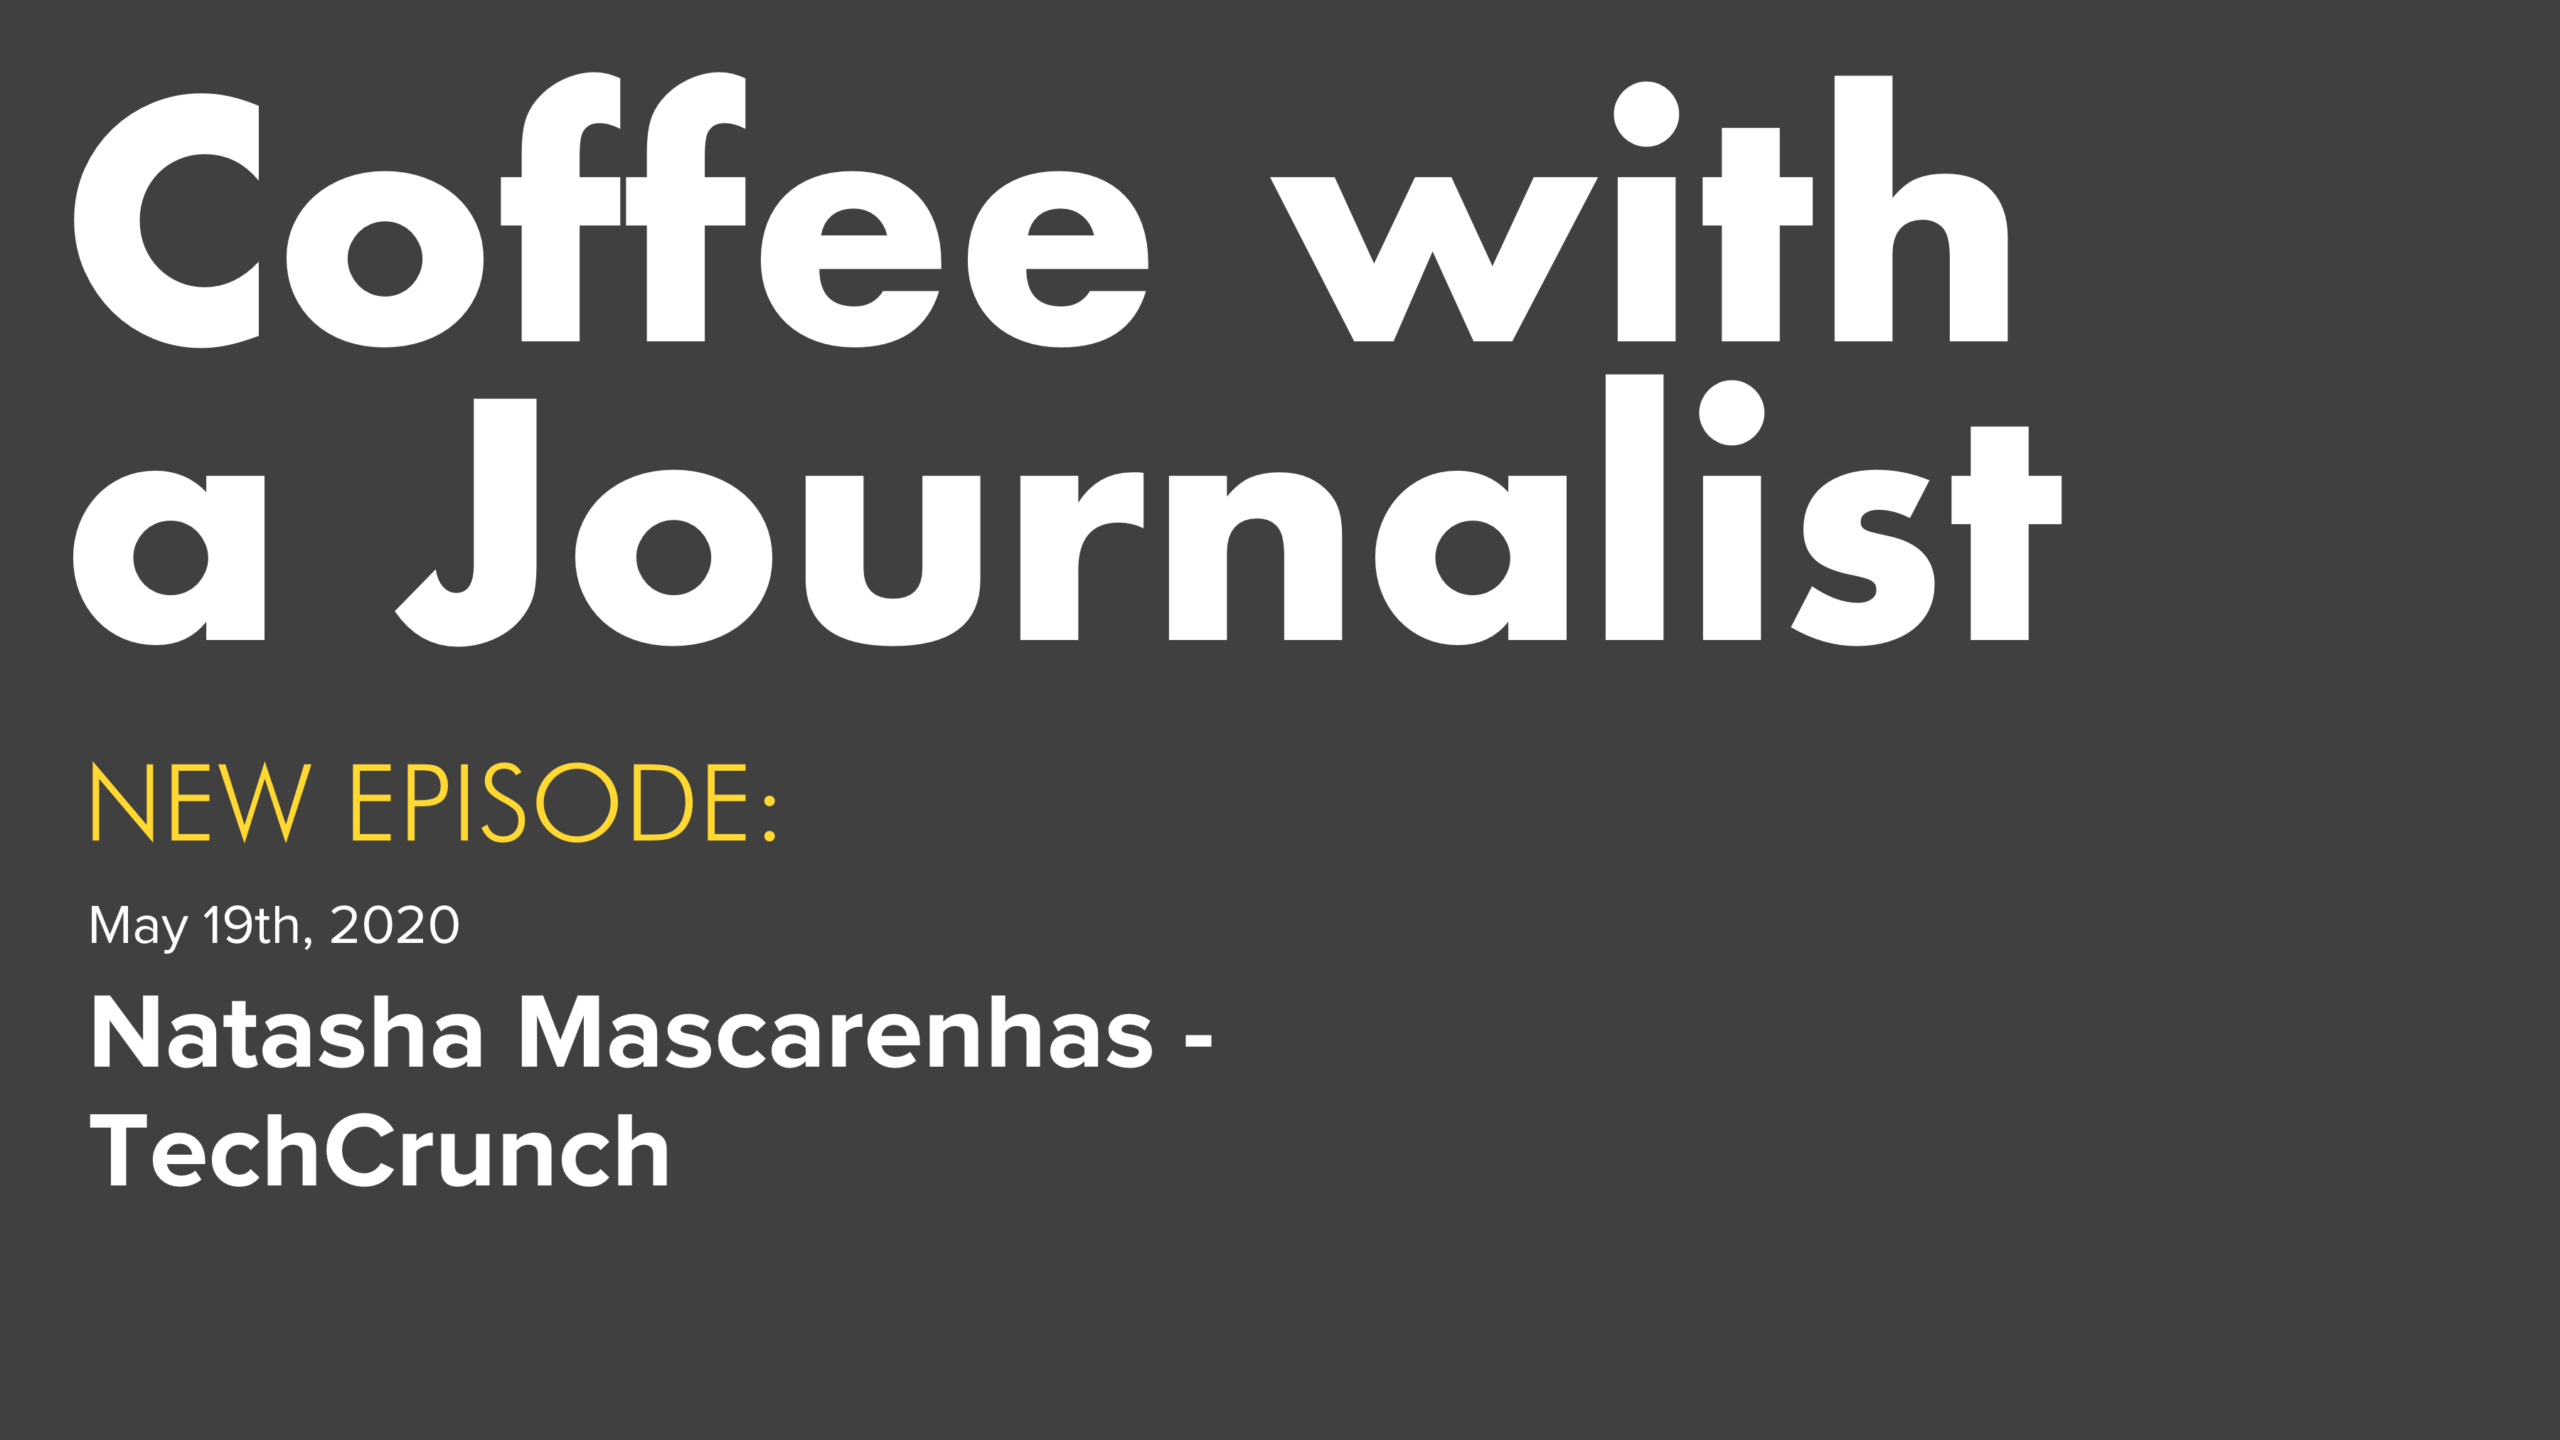 Coffee With A Journalist -Natasha Mascarenhas TechCrunch